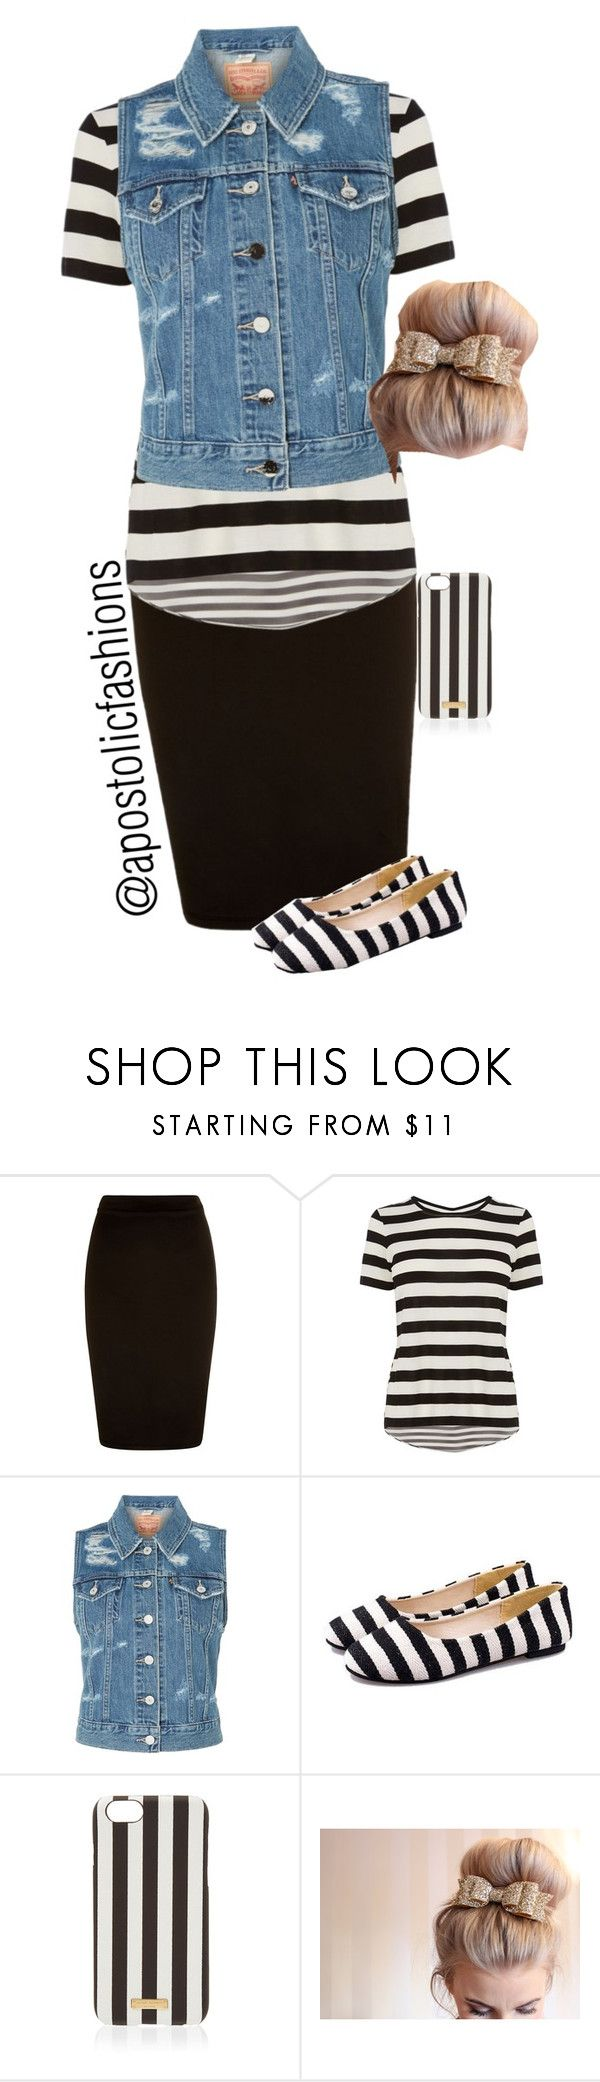 """Apostolic Fashions #965"" by apostolicfashions on Polyvore featuring Karen Millen, Levi's and Henri Bendel"